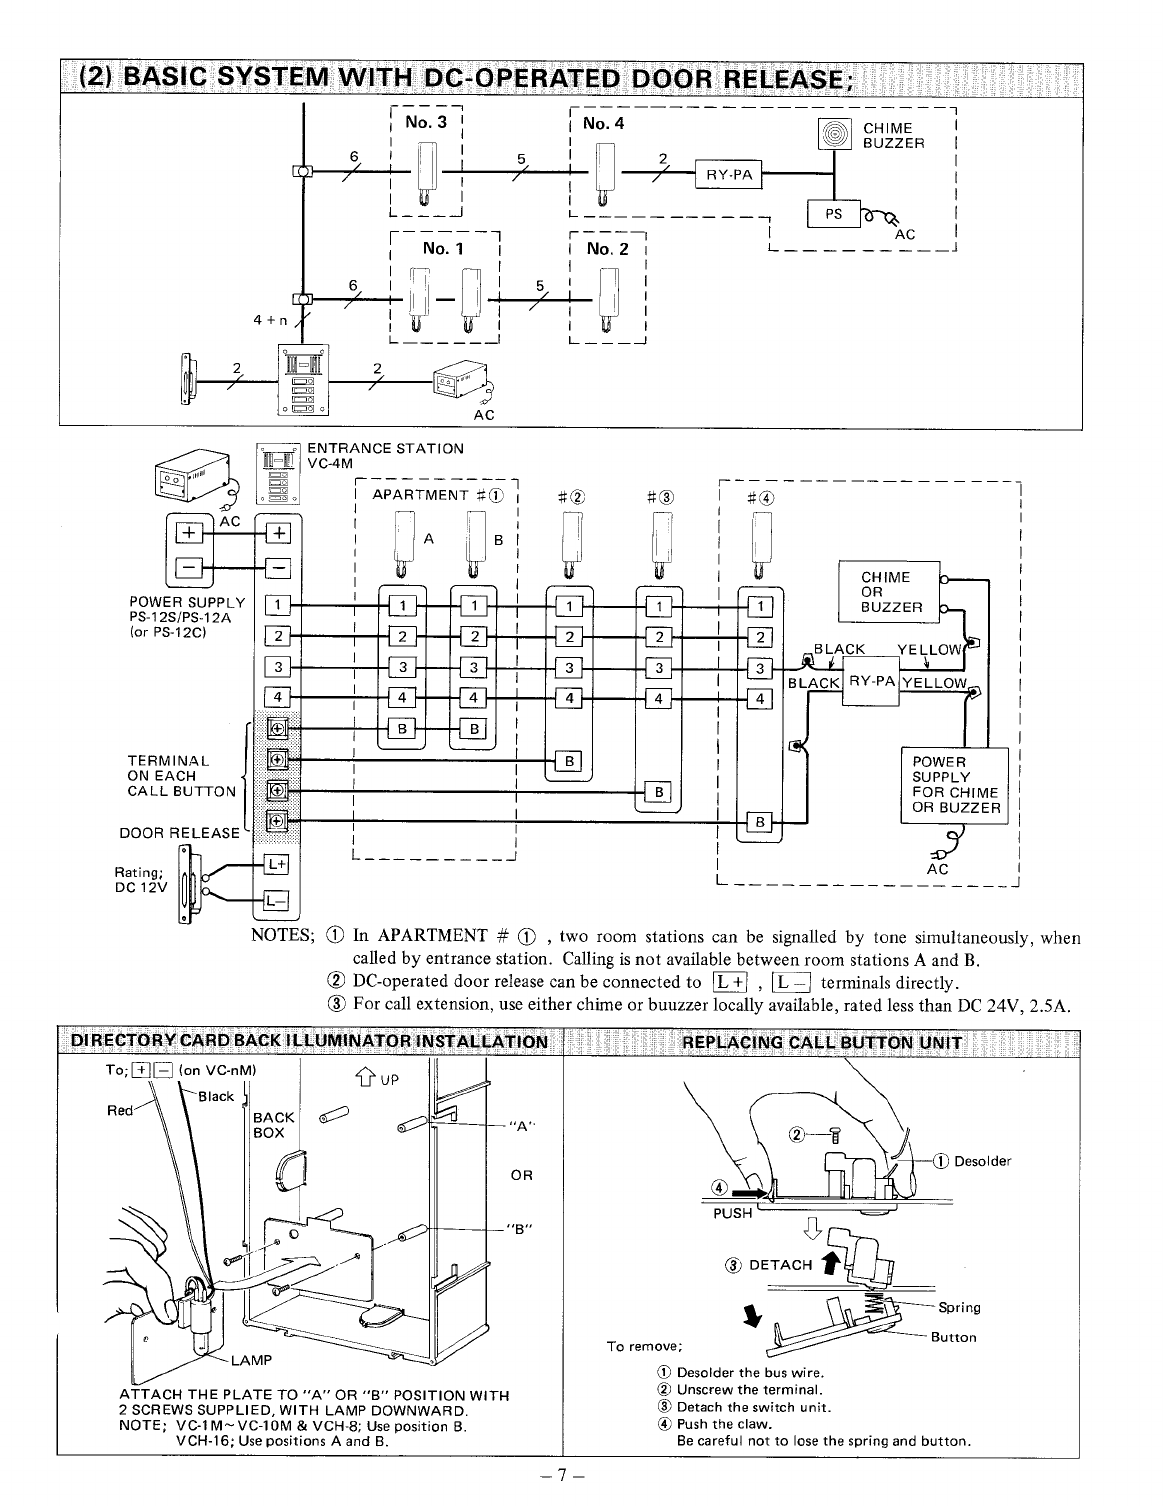 0706a428 eacf 4265 abeb d2b6a034a492 bg7 page 7 of aiphone intercom system vc k user guide manualsonline com aiphone vc-k wiring diagram at mifinder.co